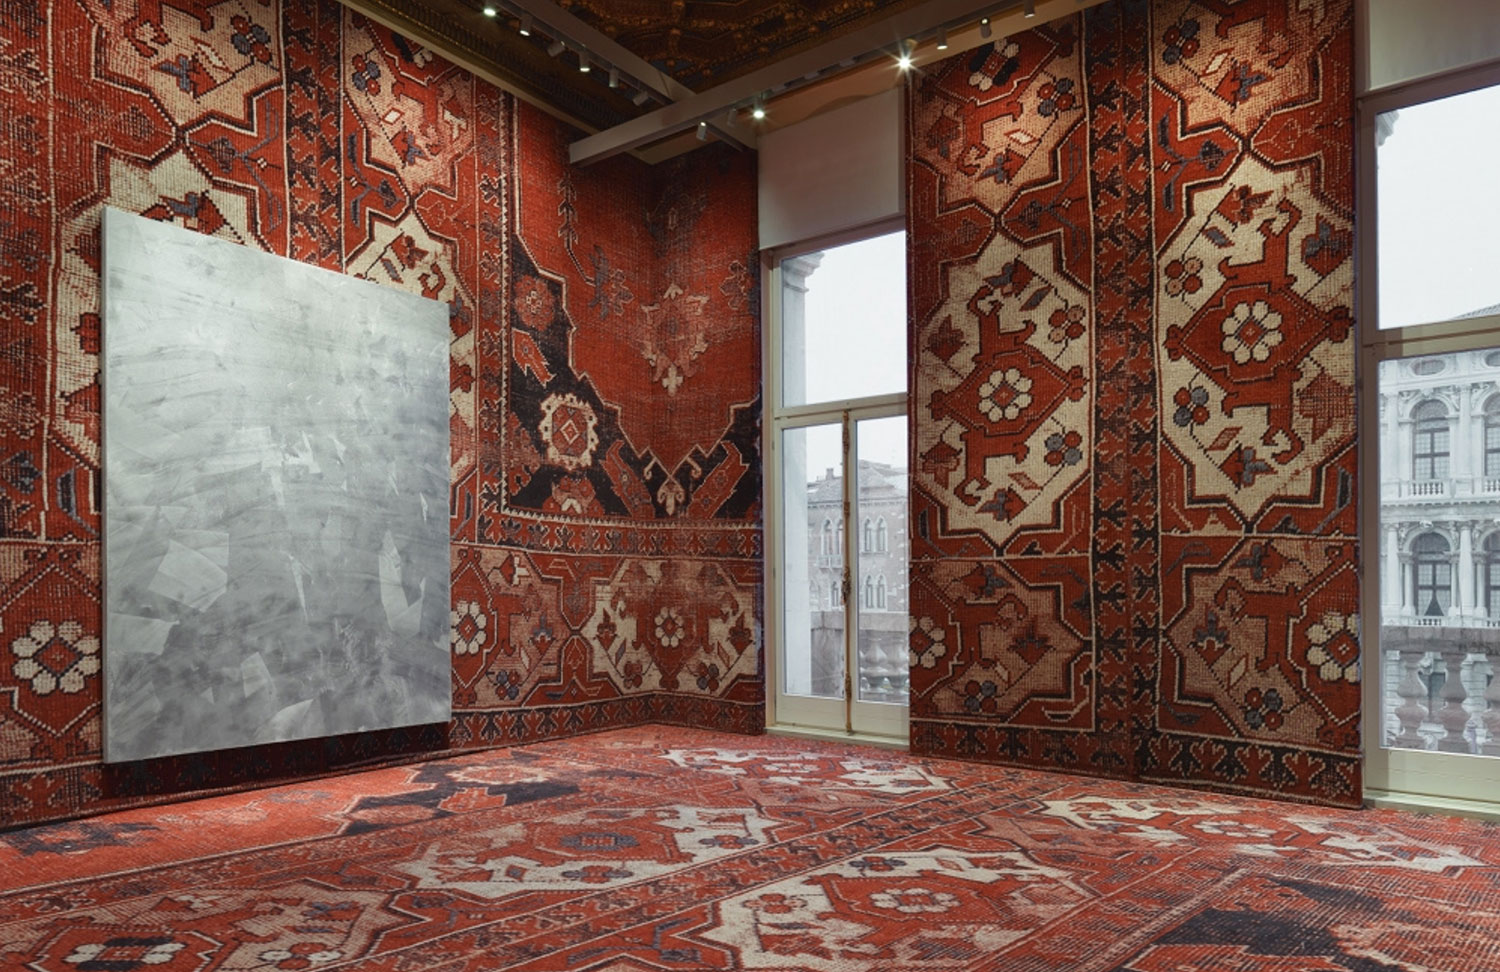 Rudolf Stingel at the Palazzo Grassi Venice Biennale 2013 | Yellowtrace.